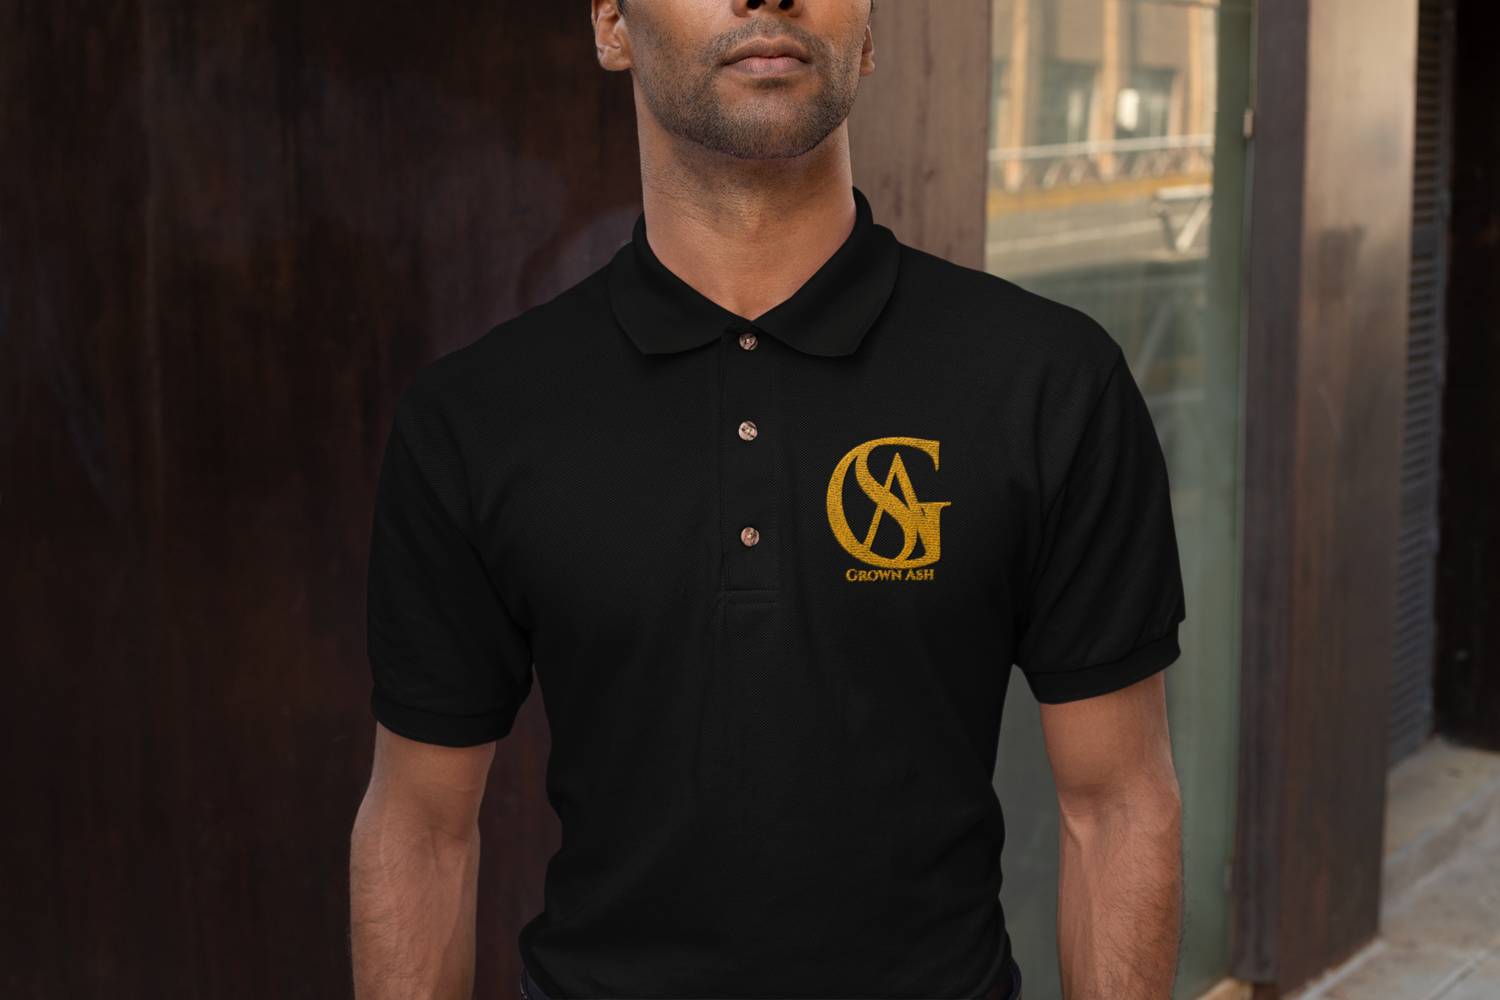 Grown Ash Polo Dri-Fit